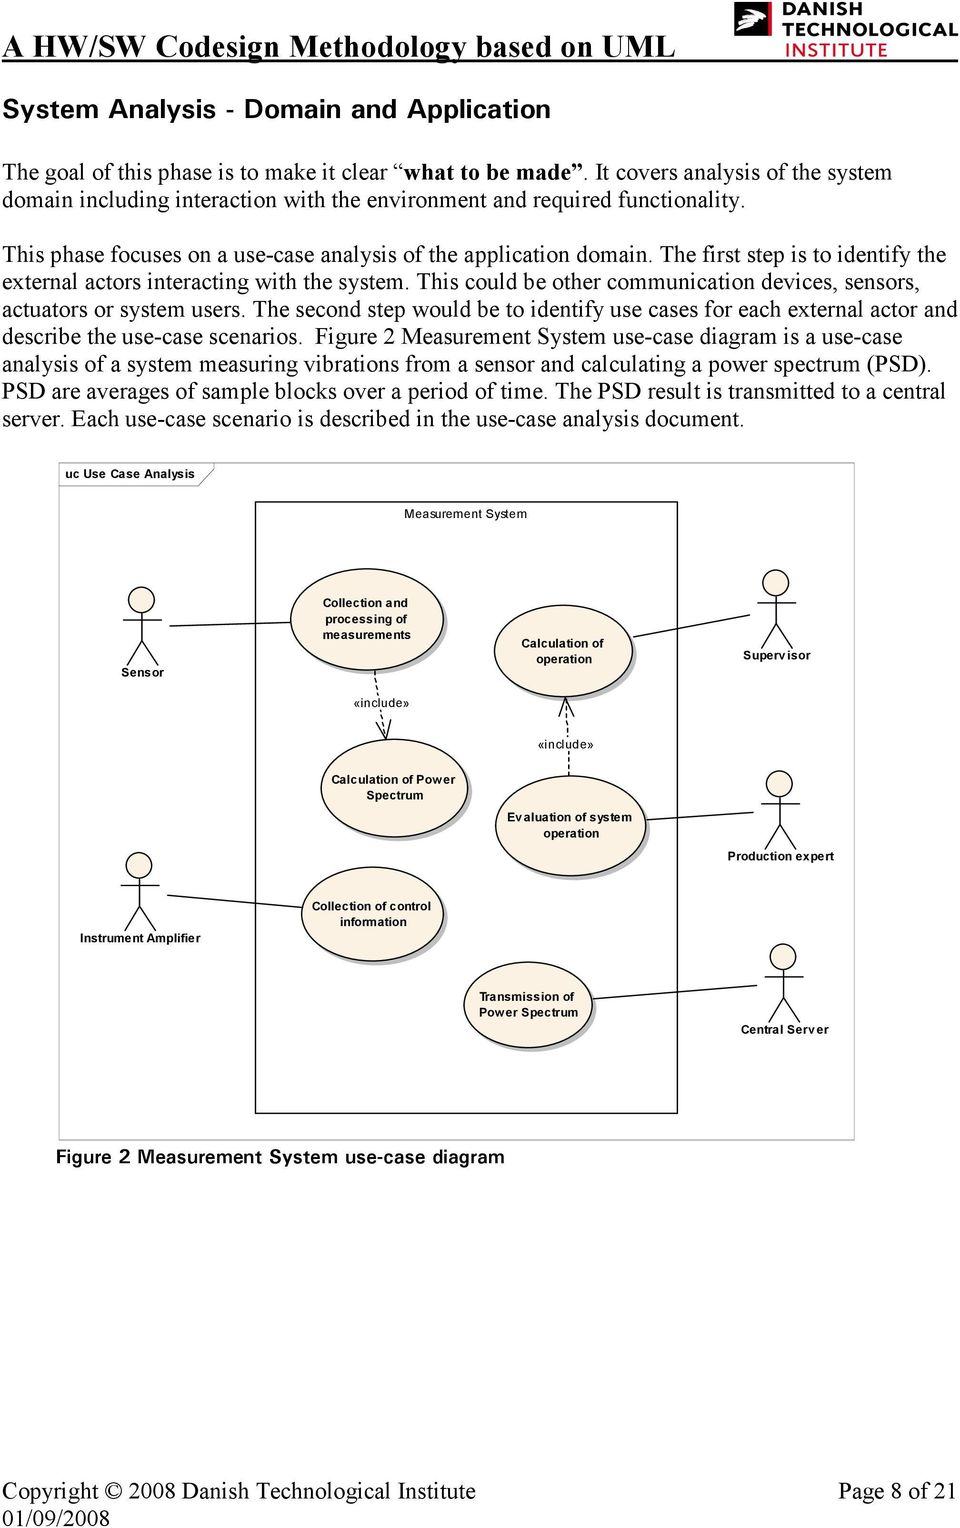 A Hw Sw Codesign Methodology Based On Uml Pdf Application Life Cycle Protocol State Machine Diagram Example The First Step Is To Identify External Actors Interacting With System This Could